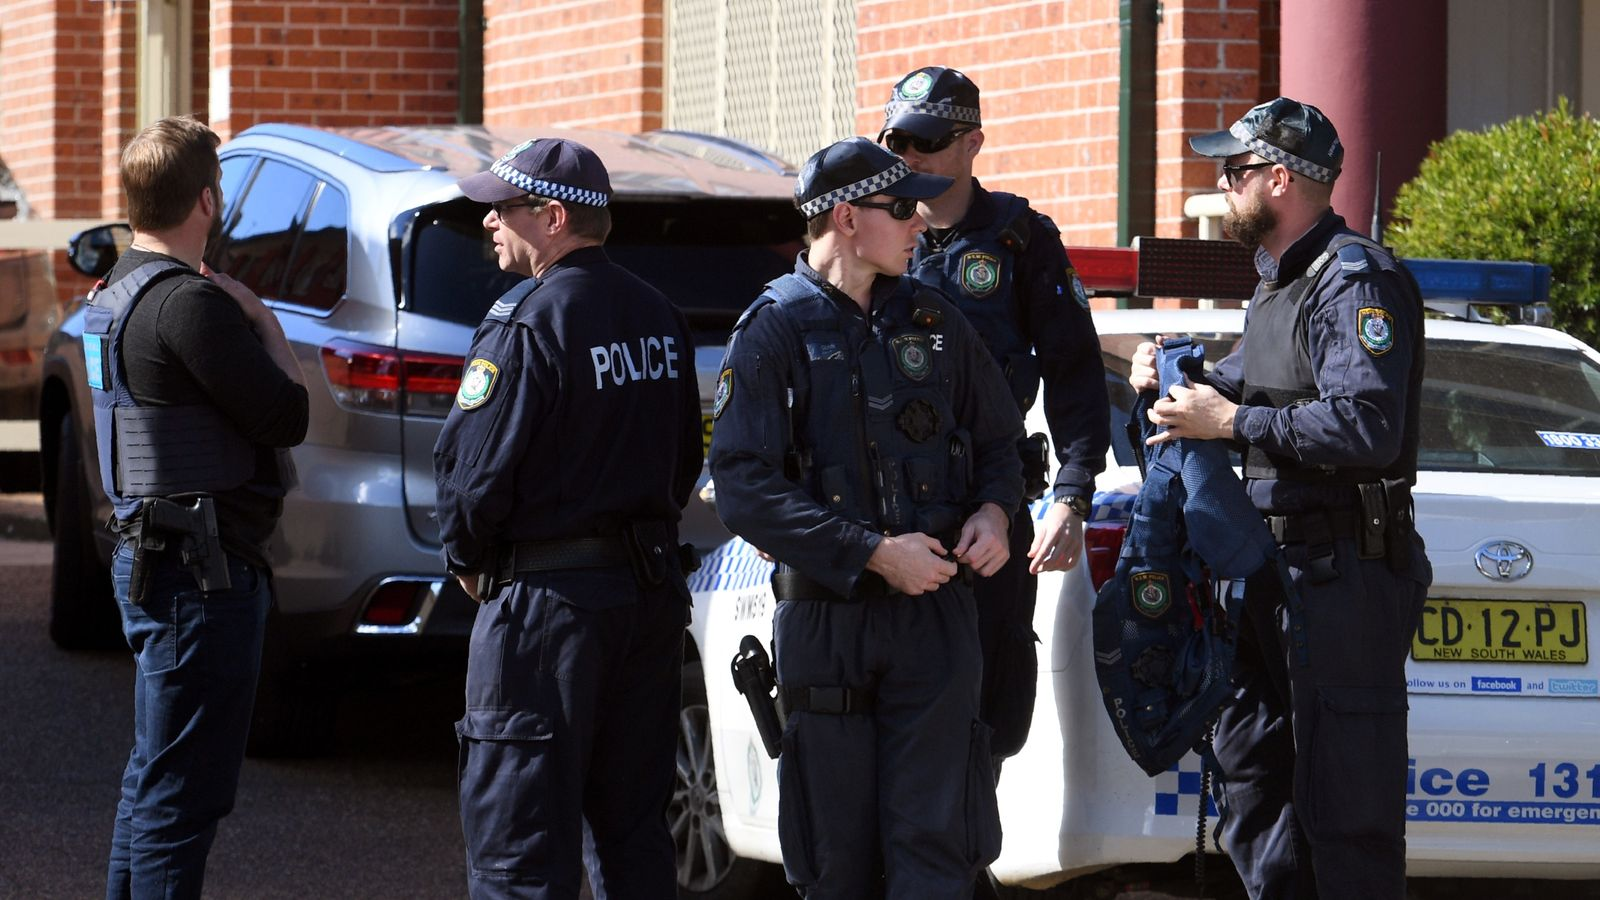 Police emerge from a block of flats in the Sydney suburb of Lakemba on August 1, 2017, after counter-terrorism raids across the city at the weekend